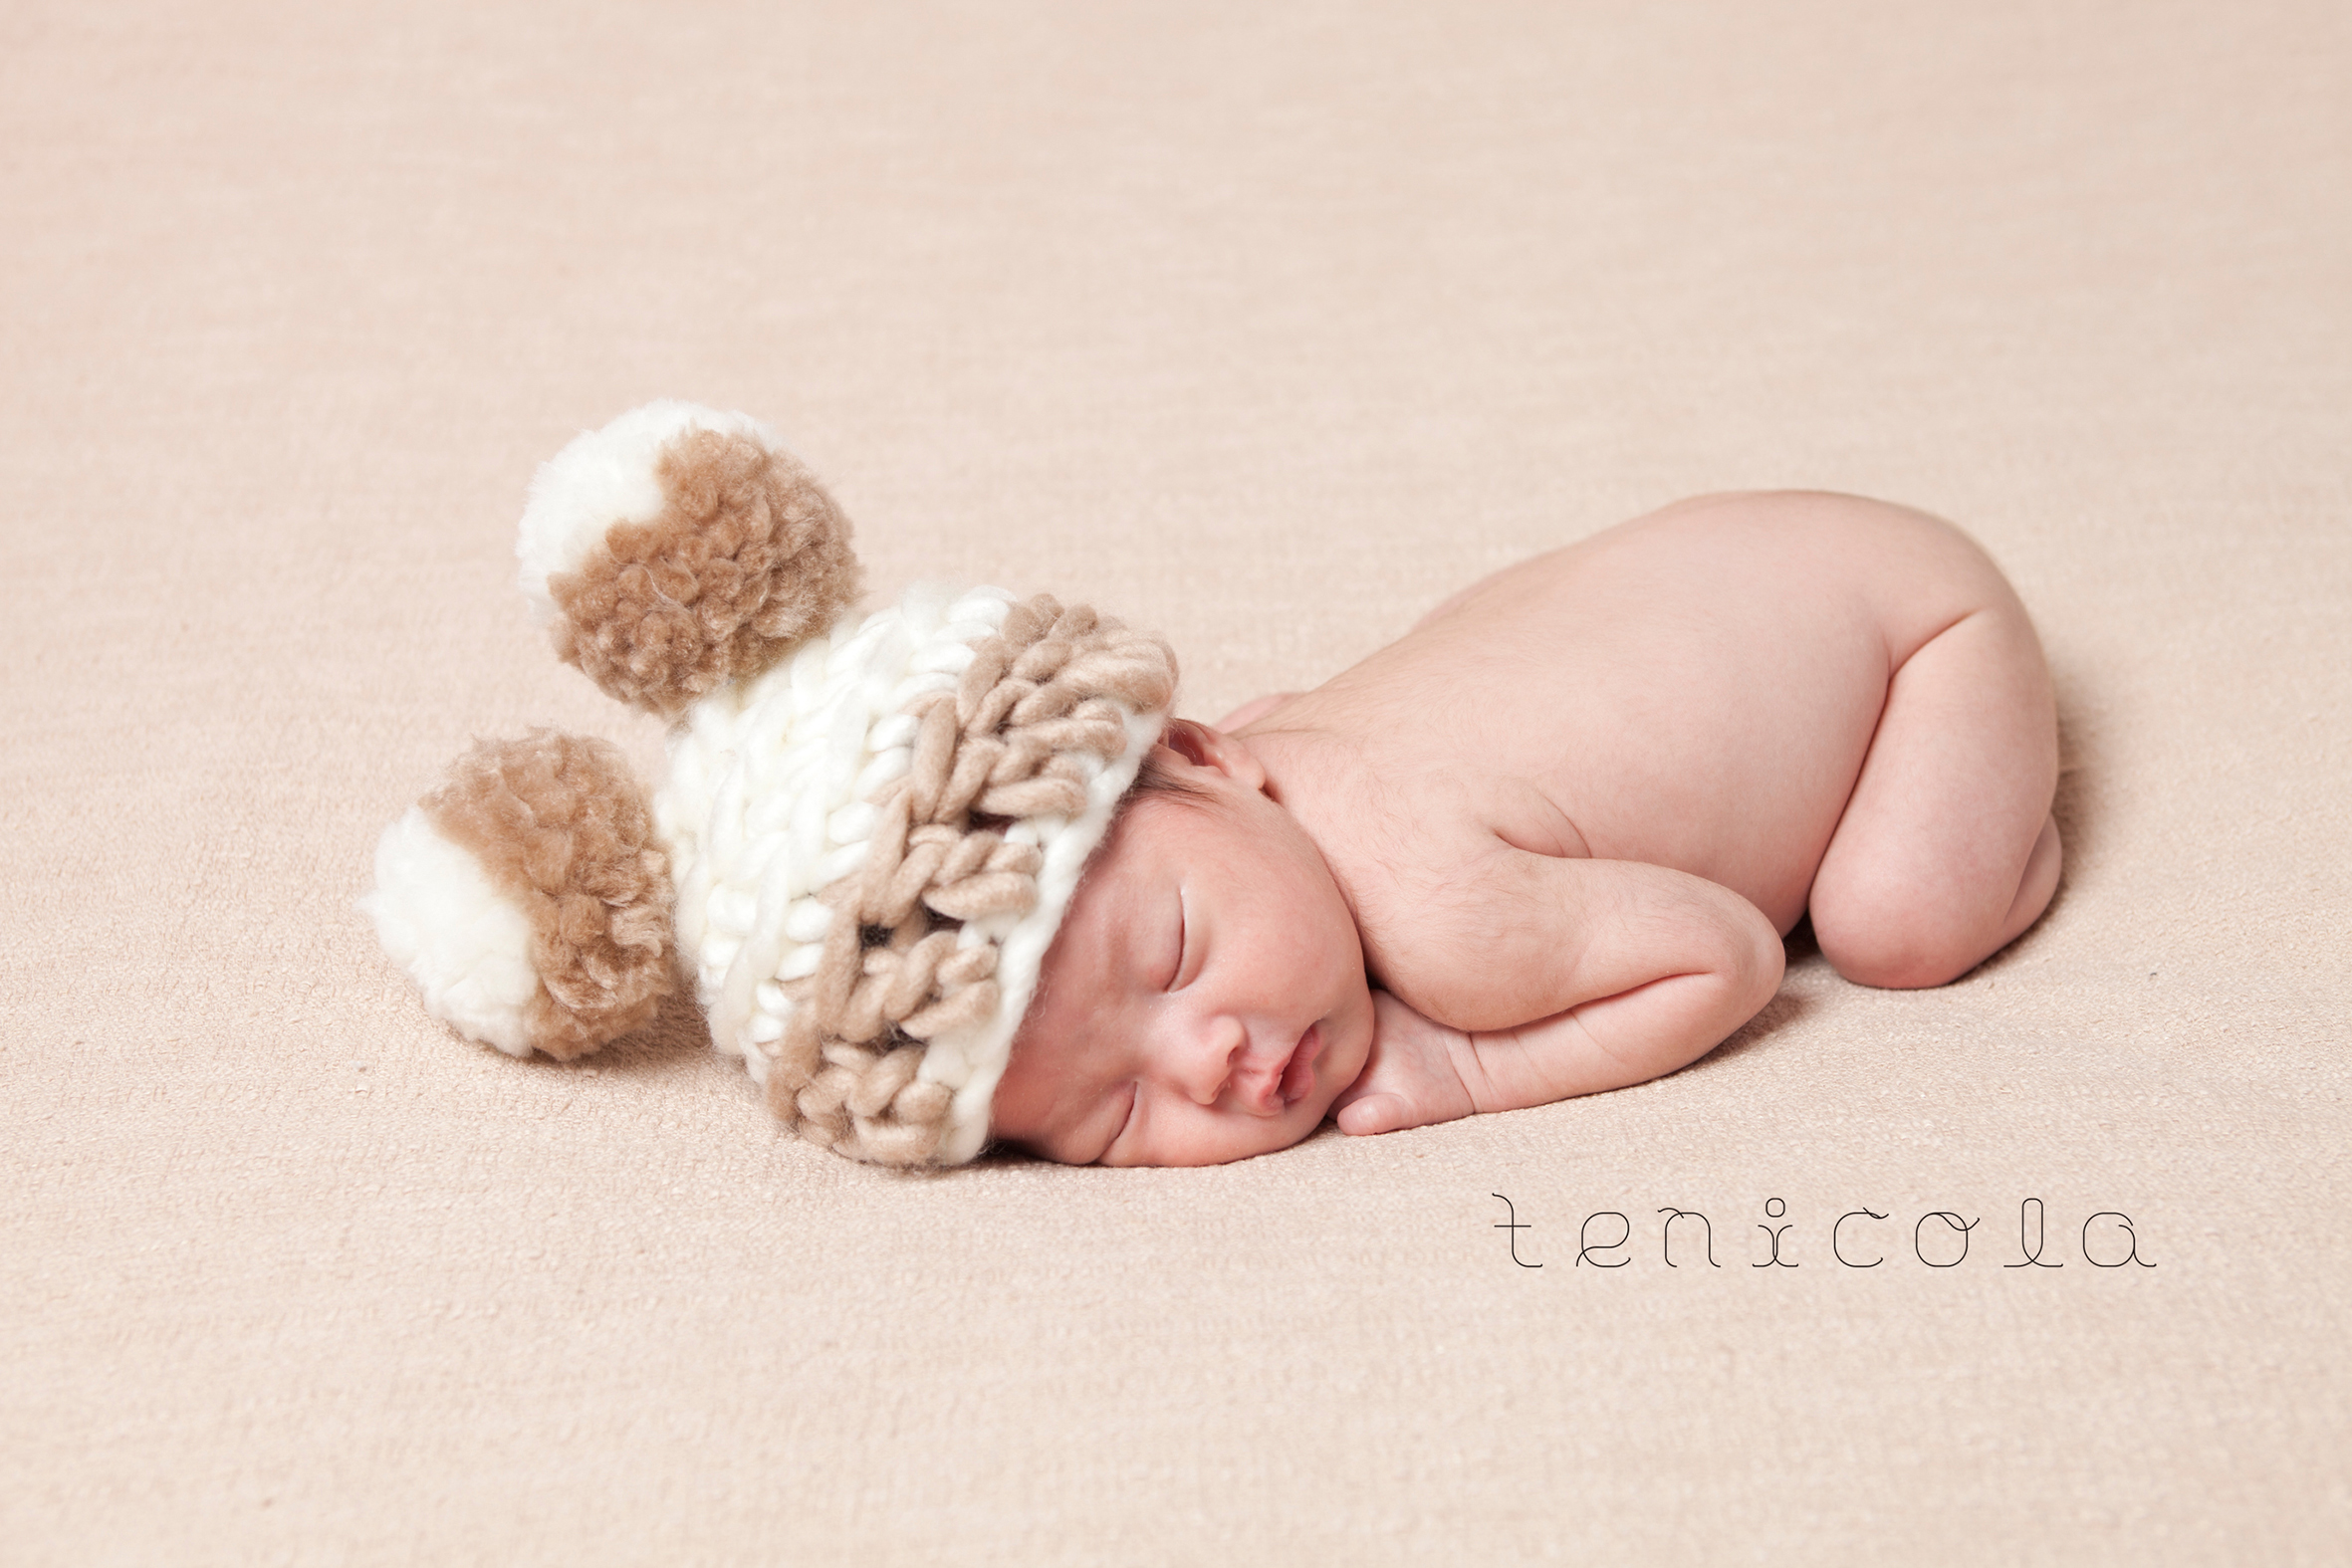 Newborn photo tenicola newborn photo tenicola ニューボーンフォト 2016_09696